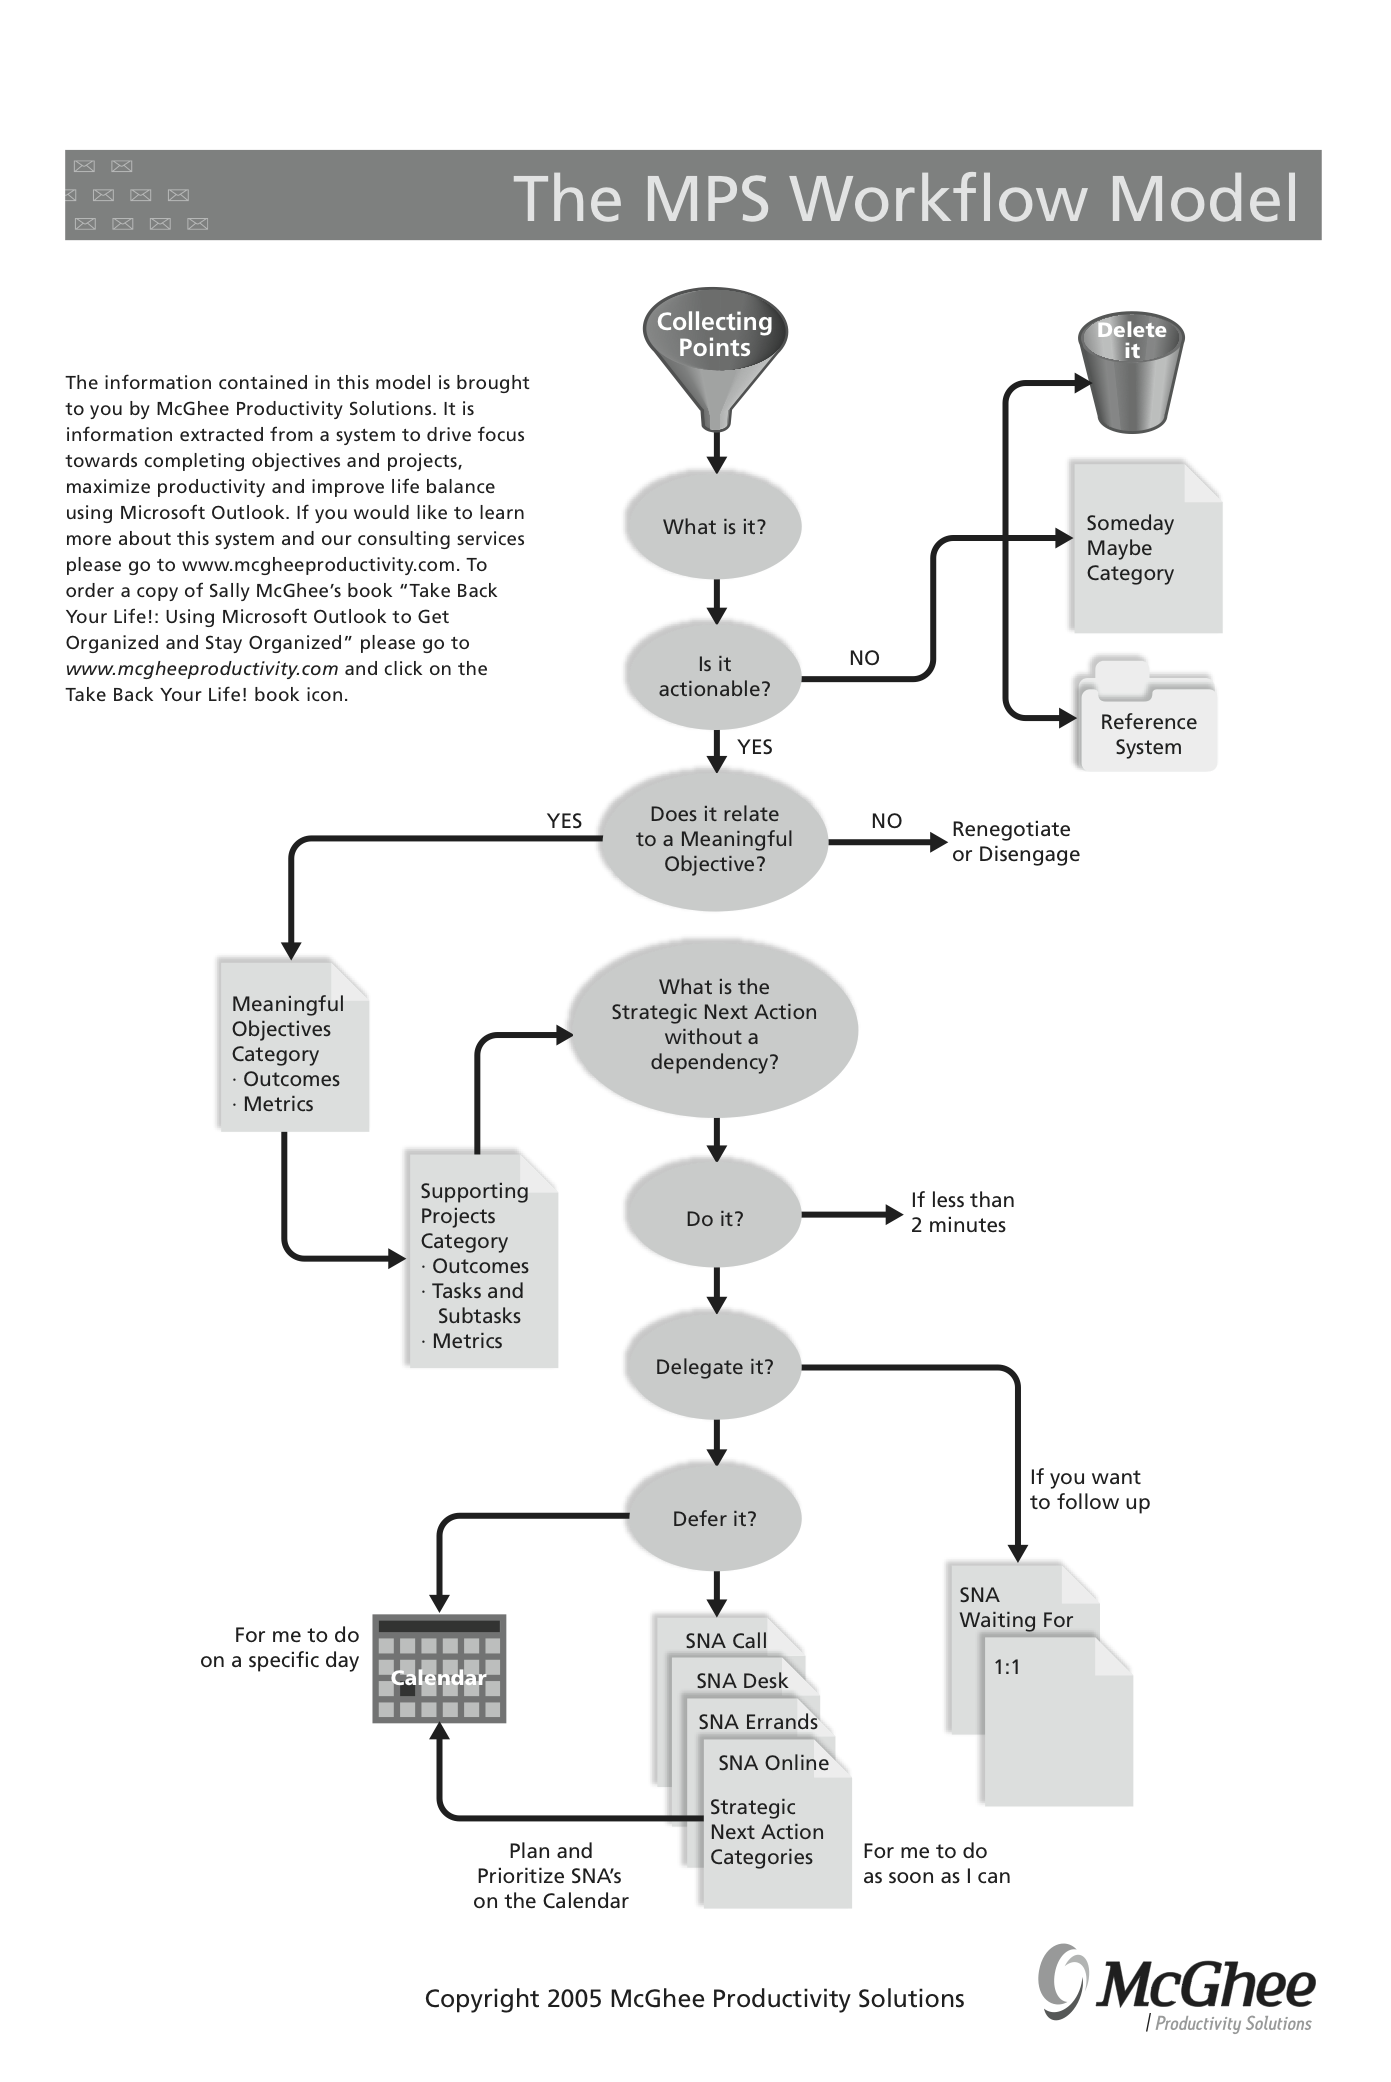 The MPS Workflow Model